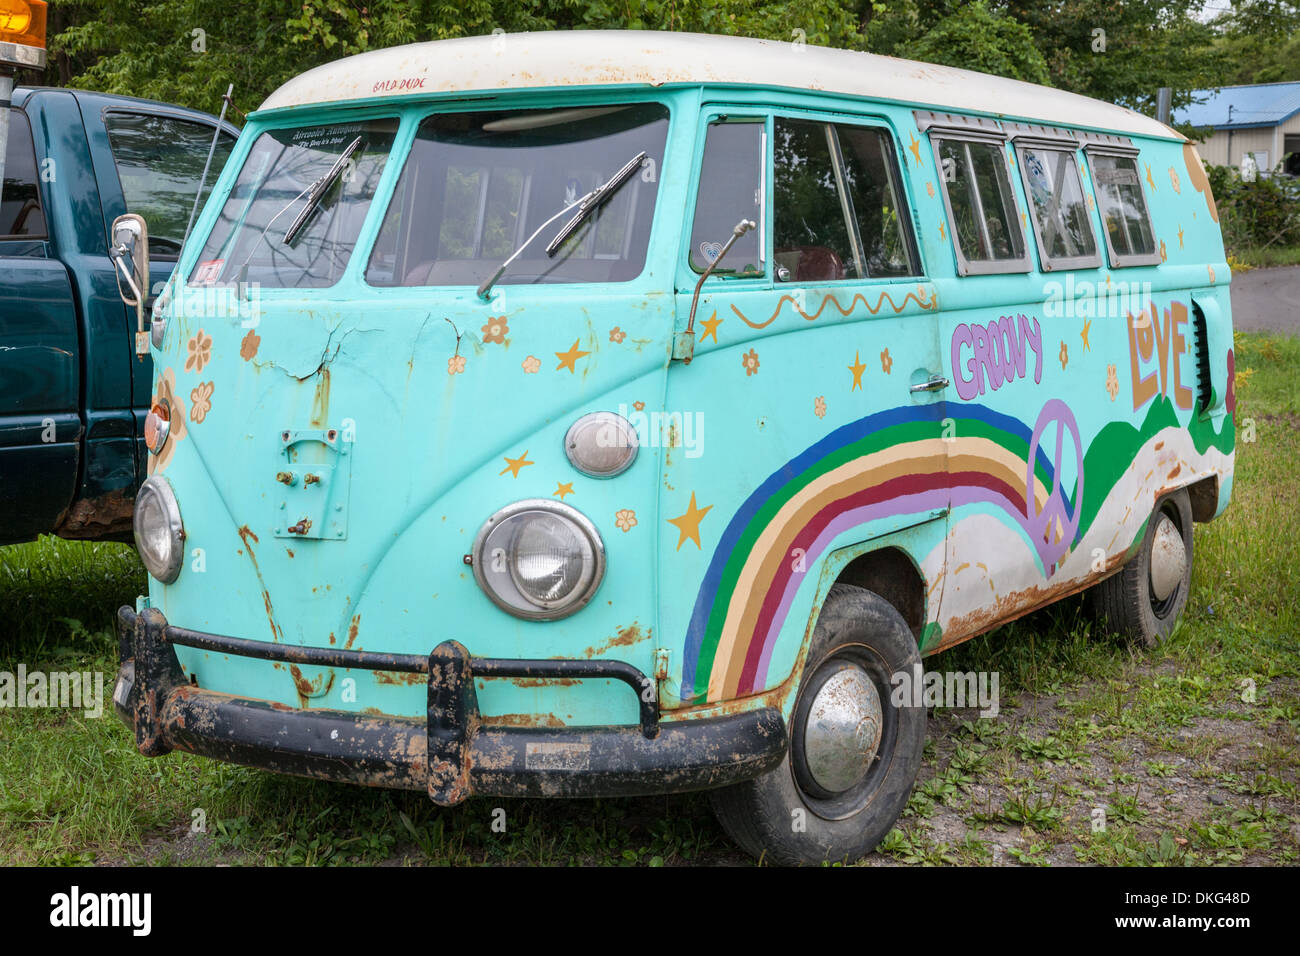 7295f098e6 Hippie Van Stock Photos   Hippie Van Stock Images - Alamy